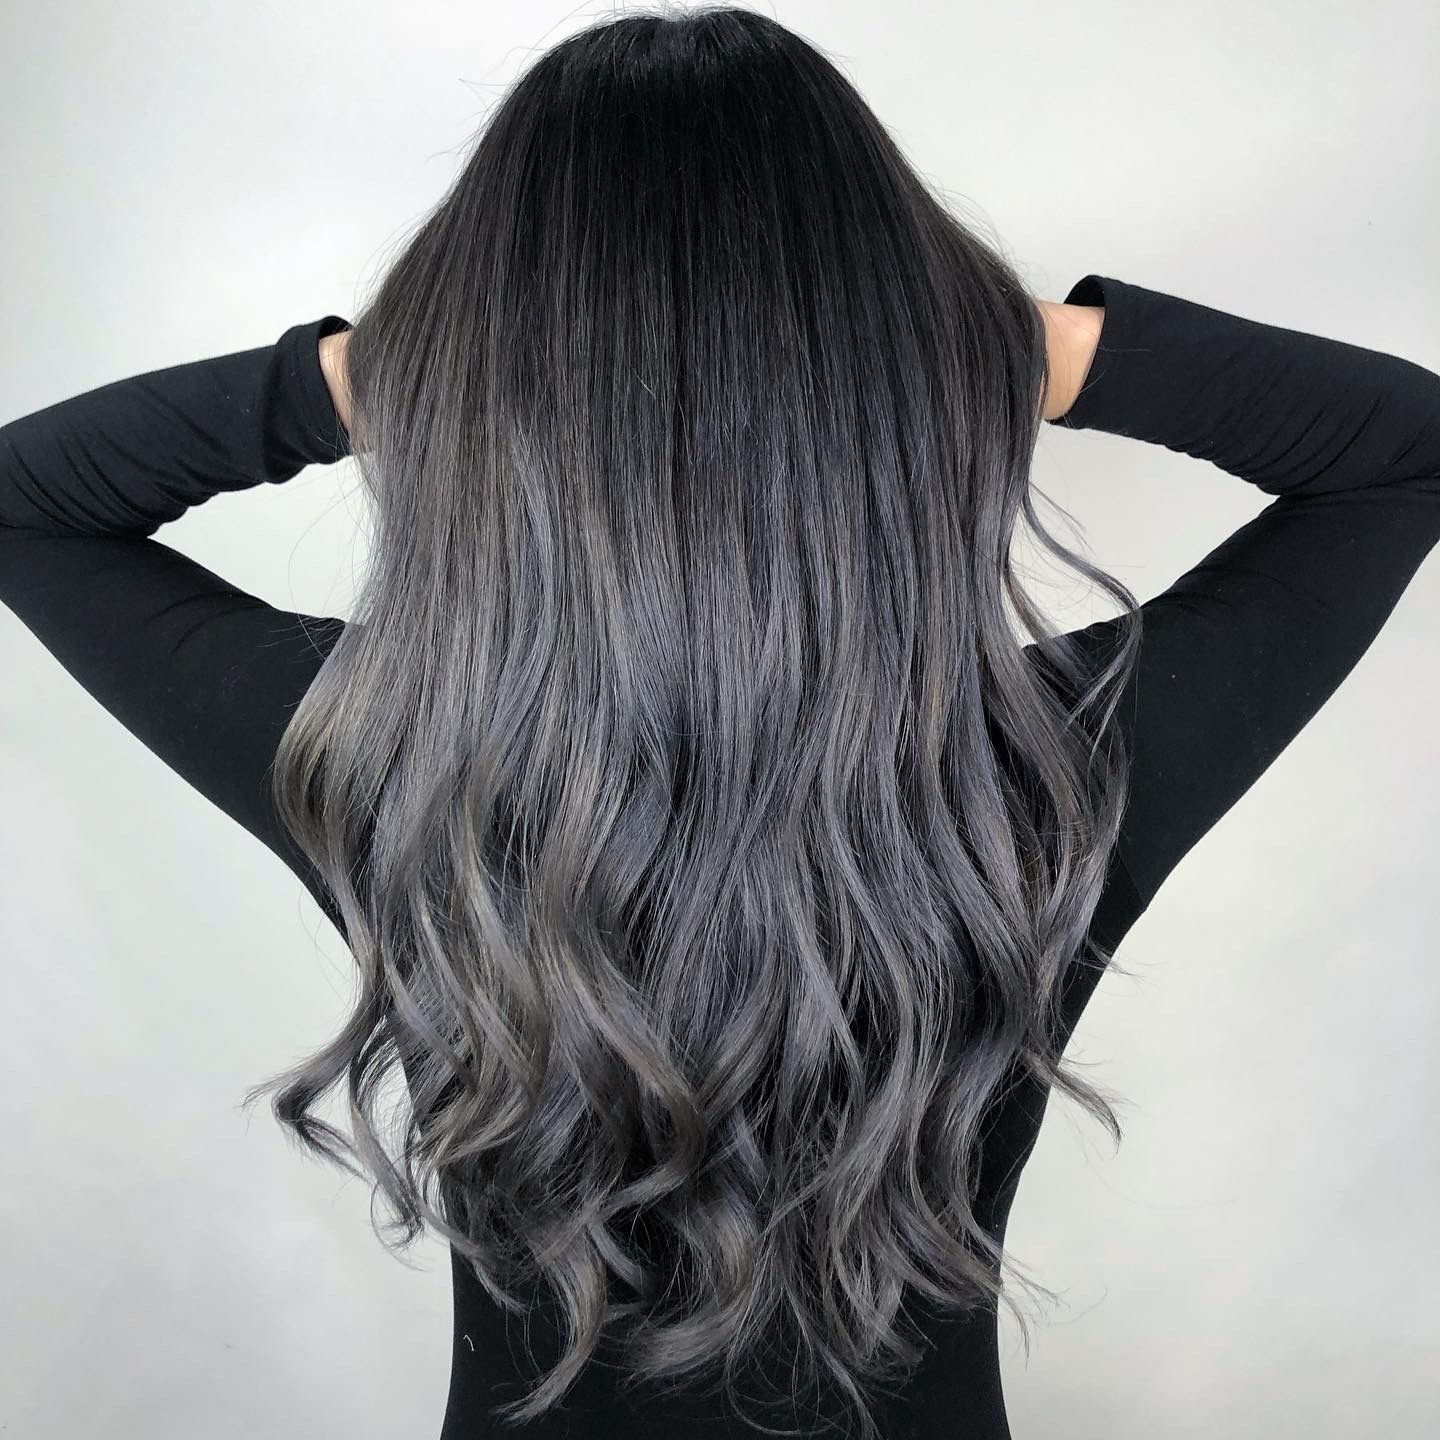 Top Hair Styles For Women With Ash Gray Hair